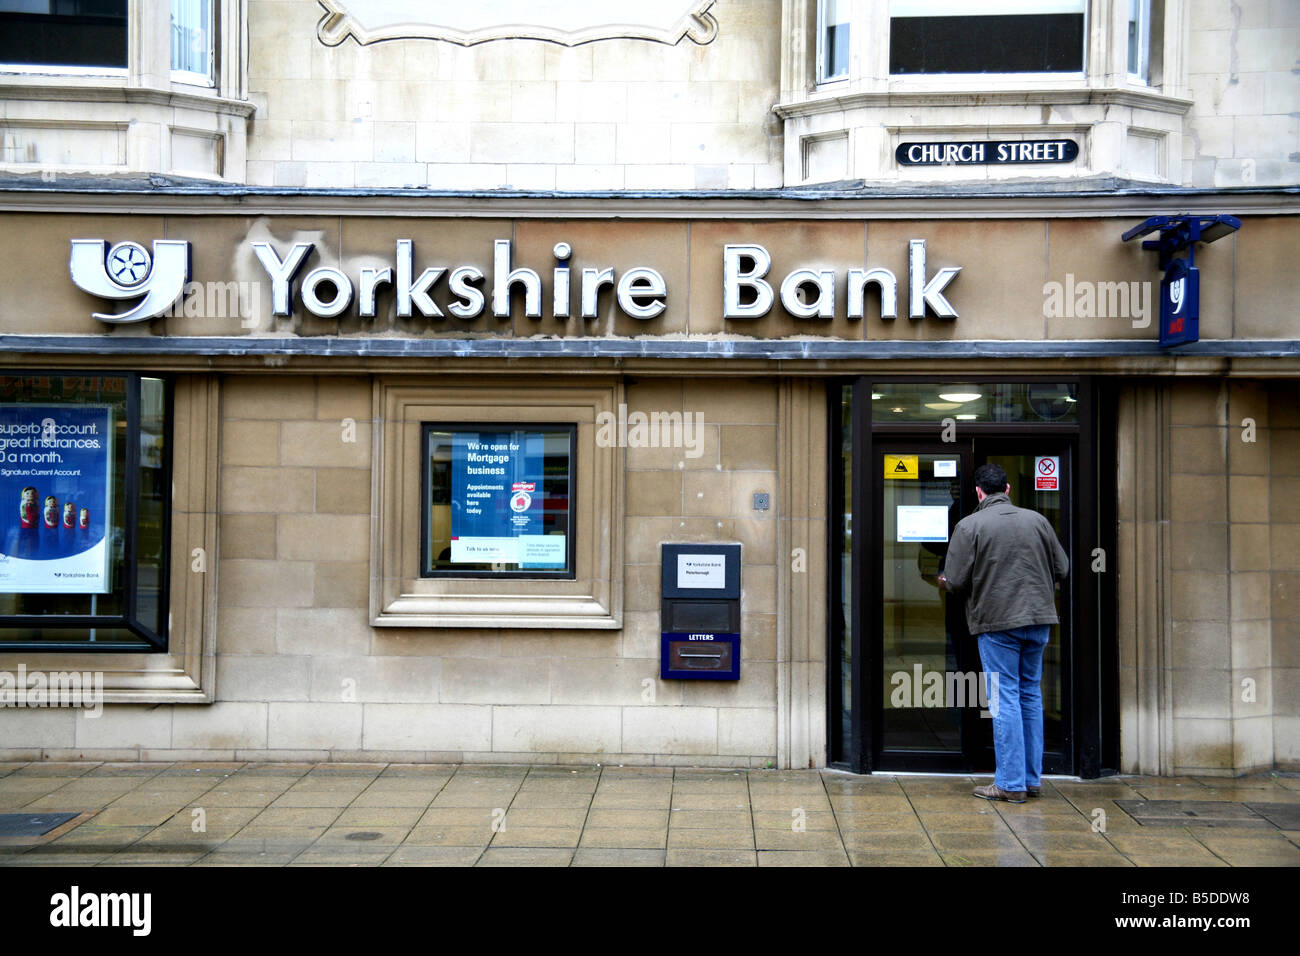 Branch of the Yorkshire Bank in Peterborough - Stock Image